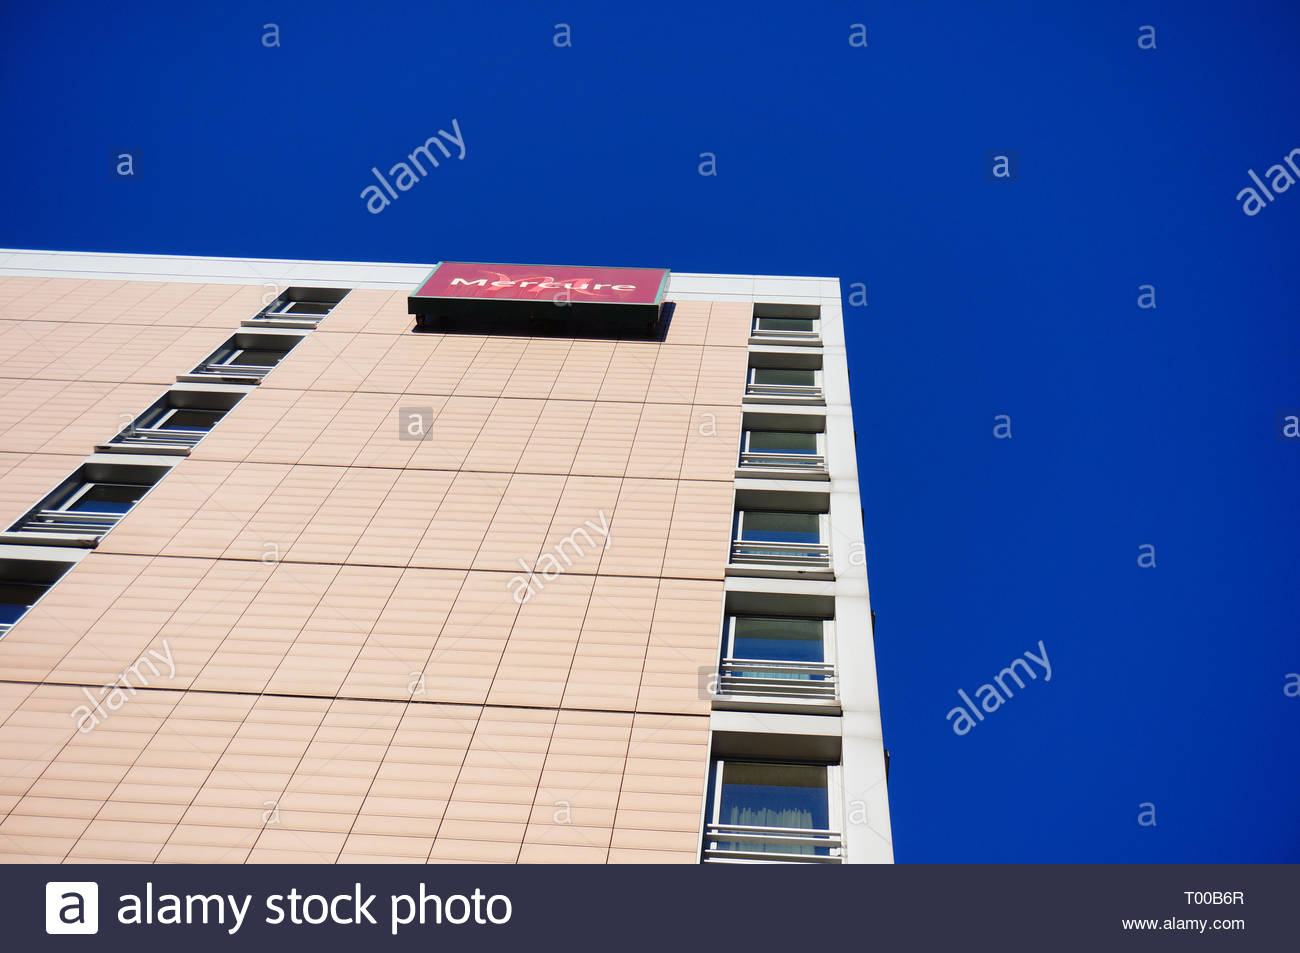 Poznan, Poland - October 31, 2018: Mercure Hotel building from low perspective in the city center. Stock Photo